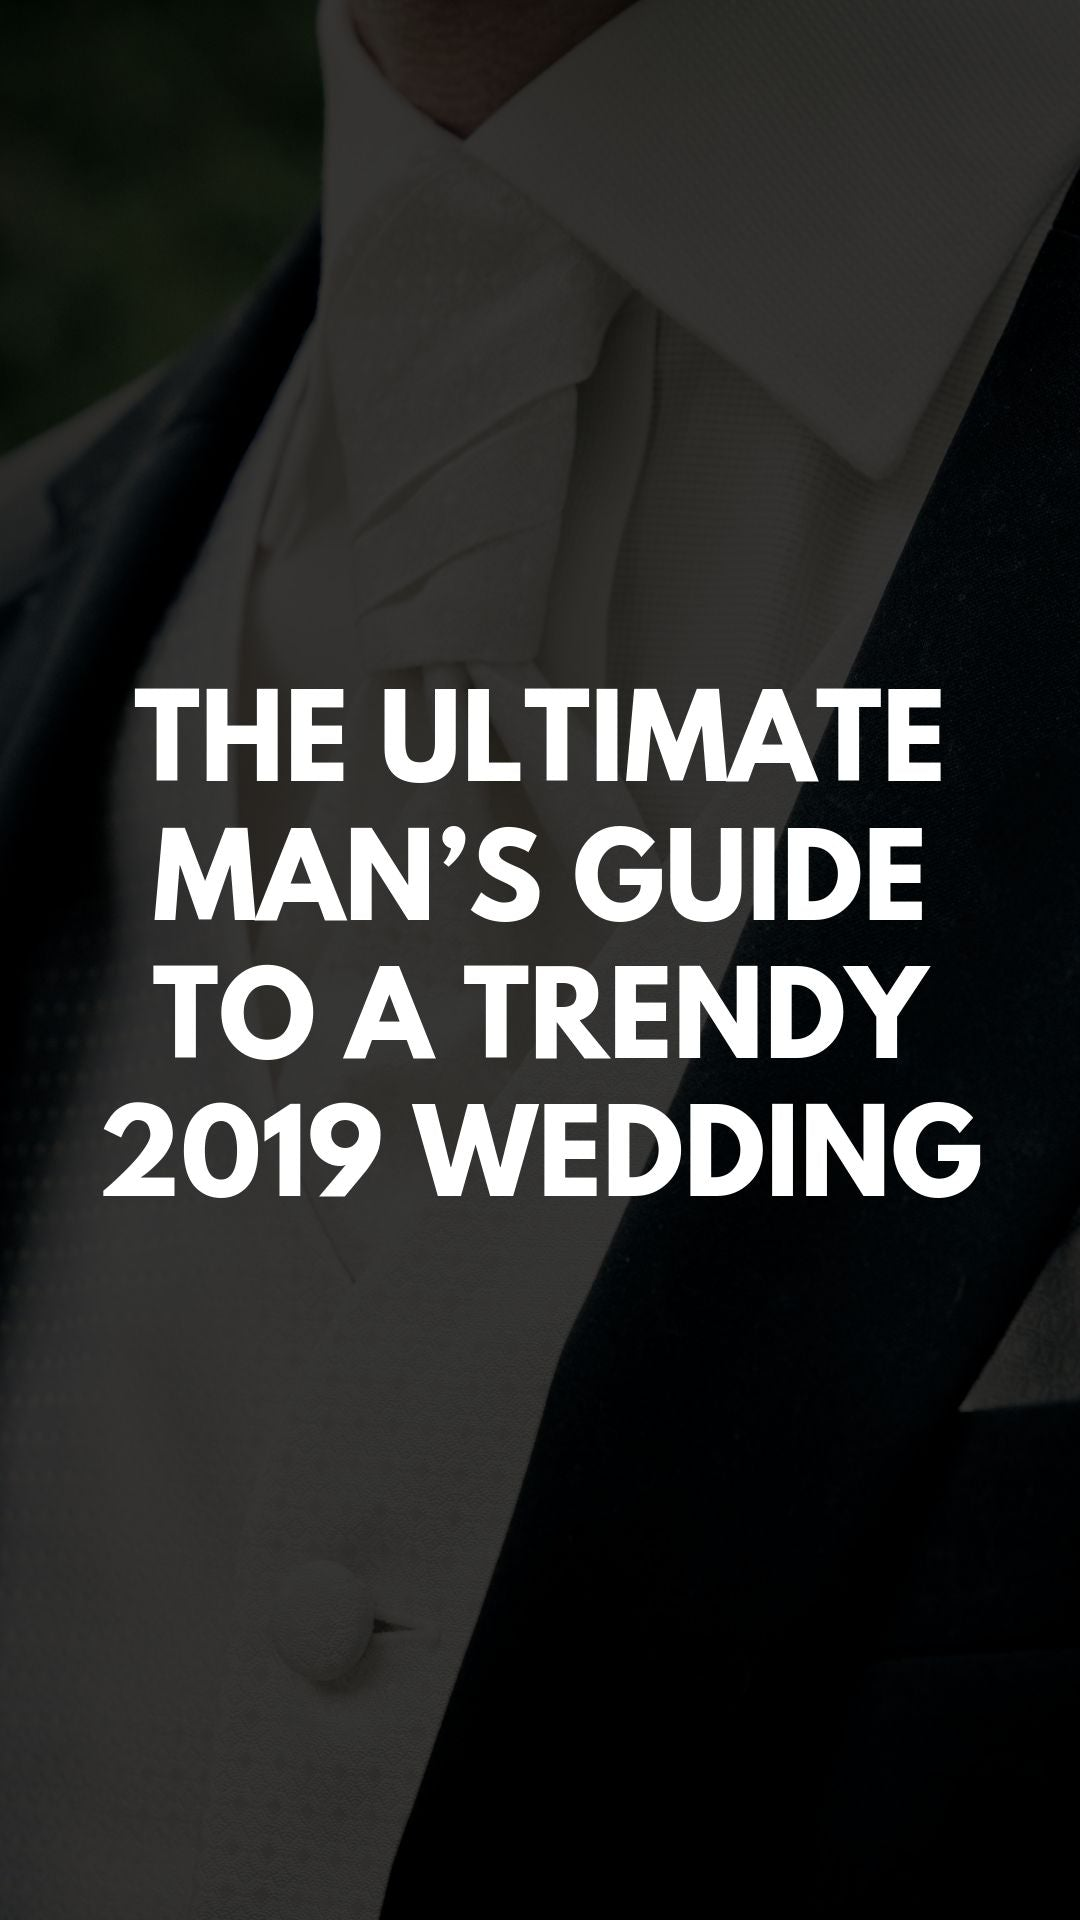 The Ultimate Man's Guide To A Trendy 2019 Wedding